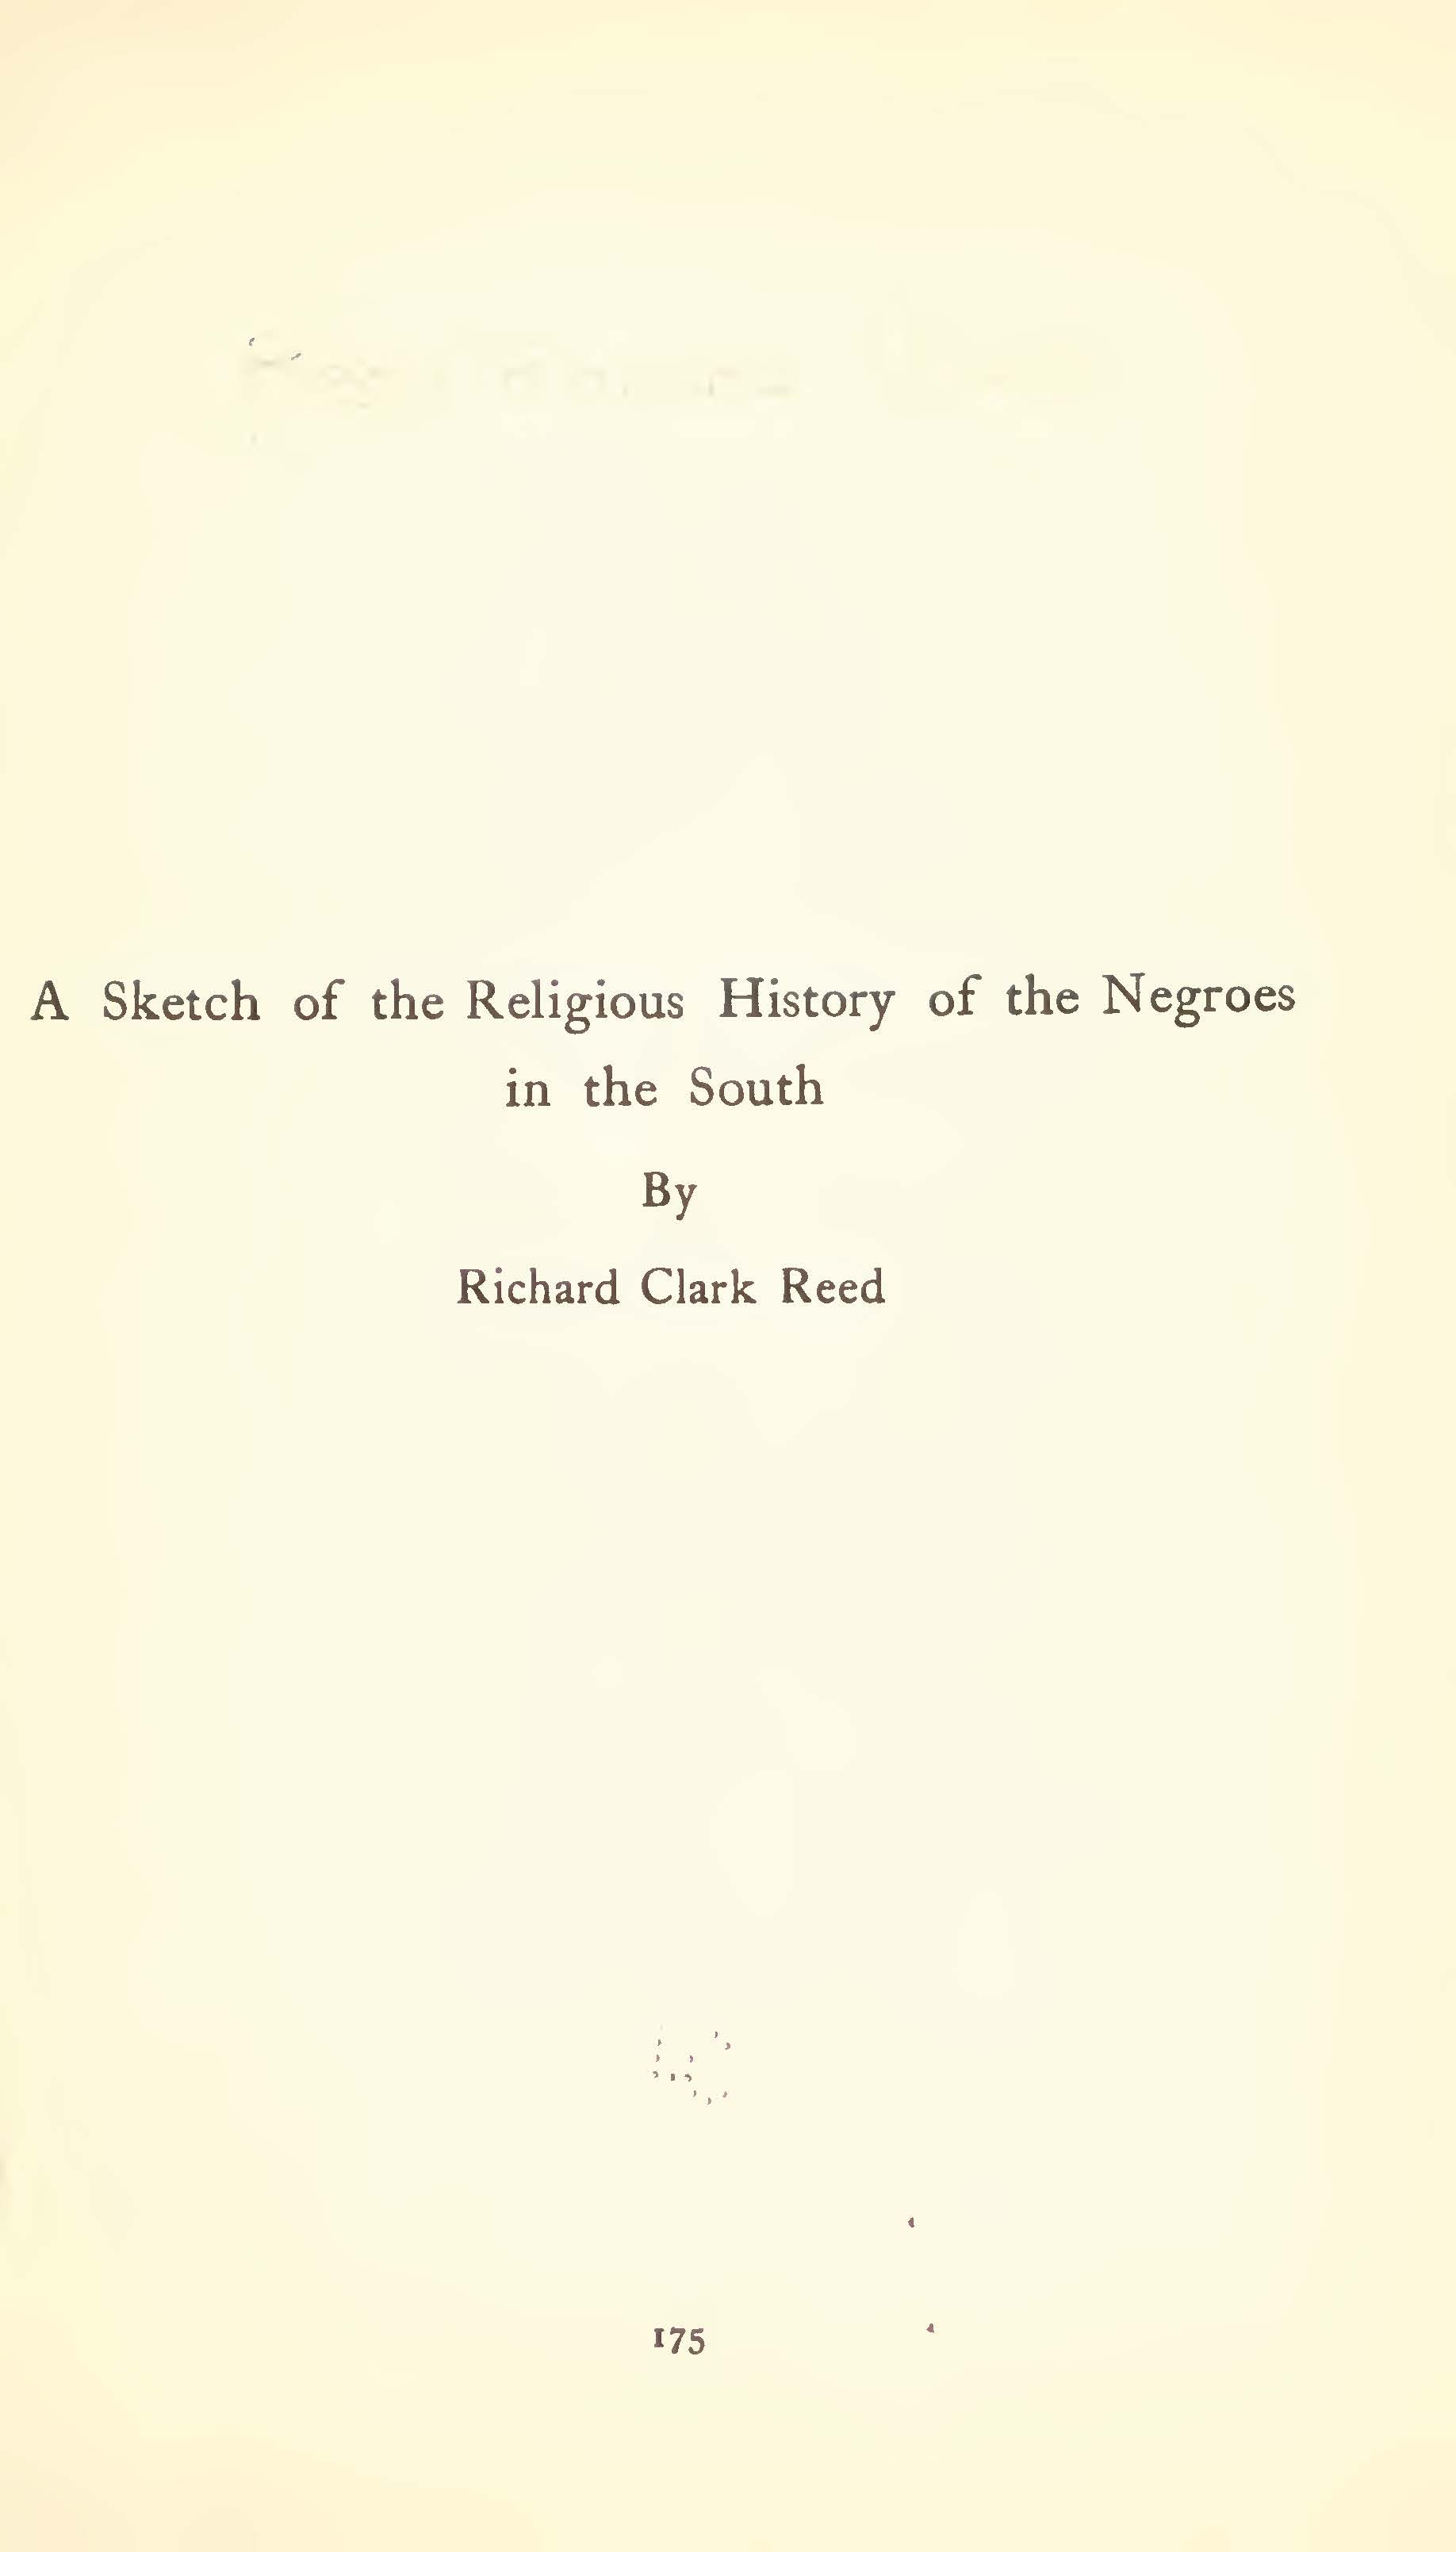 Reed, Richard Clark, A Sketch of the Reglious History of the Negroes in the South Title Page.jpg